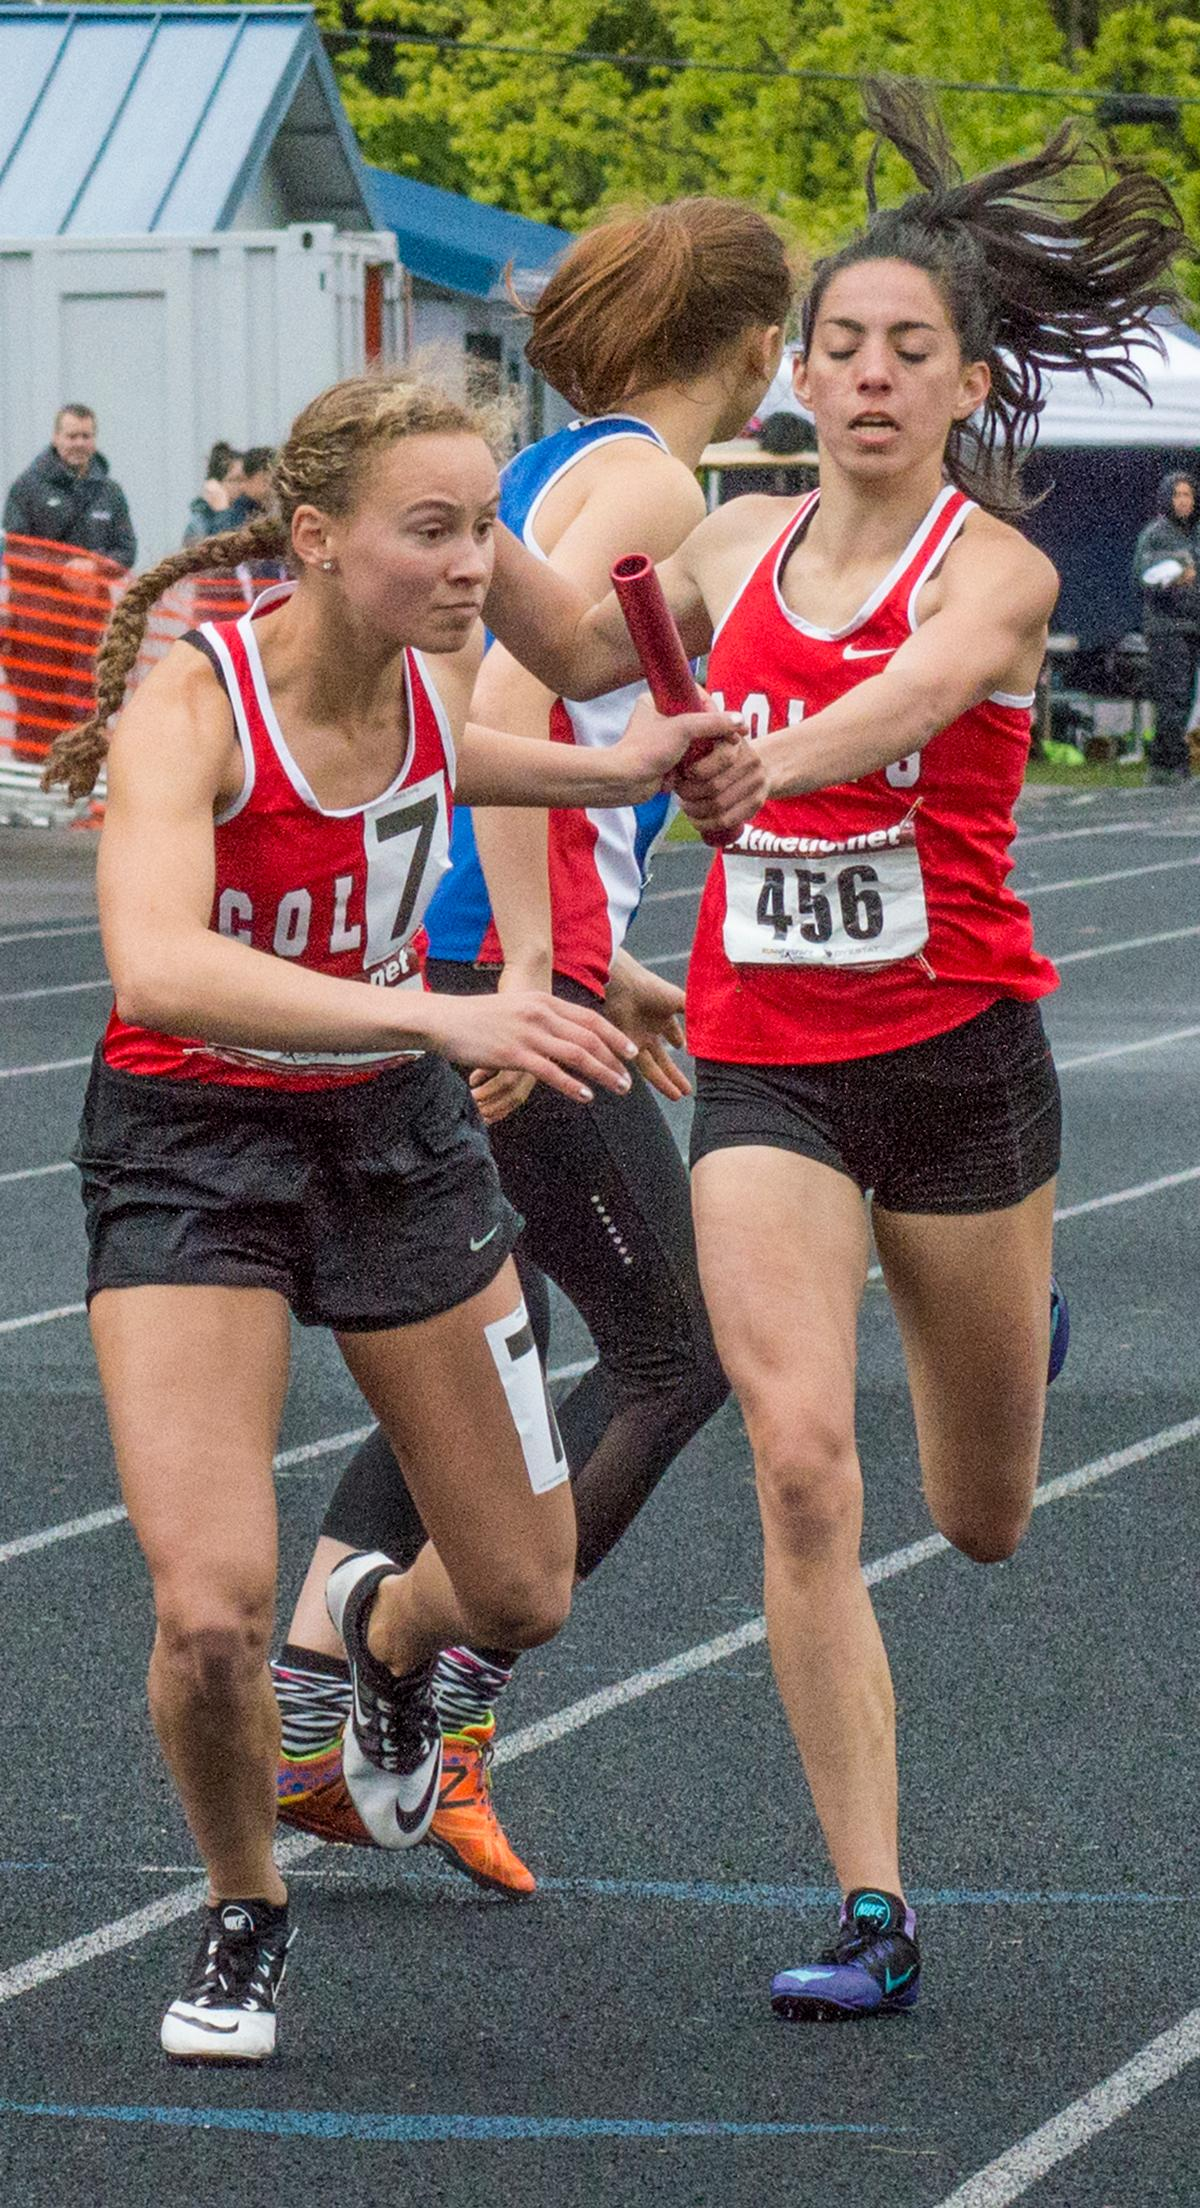 Thurston's Rhianna Brown passes the baton to anchor Tara Crosswhite in the Women's 4 x 400m event at the 5A-3 Midwestern League District Championship. The Colts take first with a time of 4:10.75. Photo by Emily Gonzalez, Oregon News Lab.